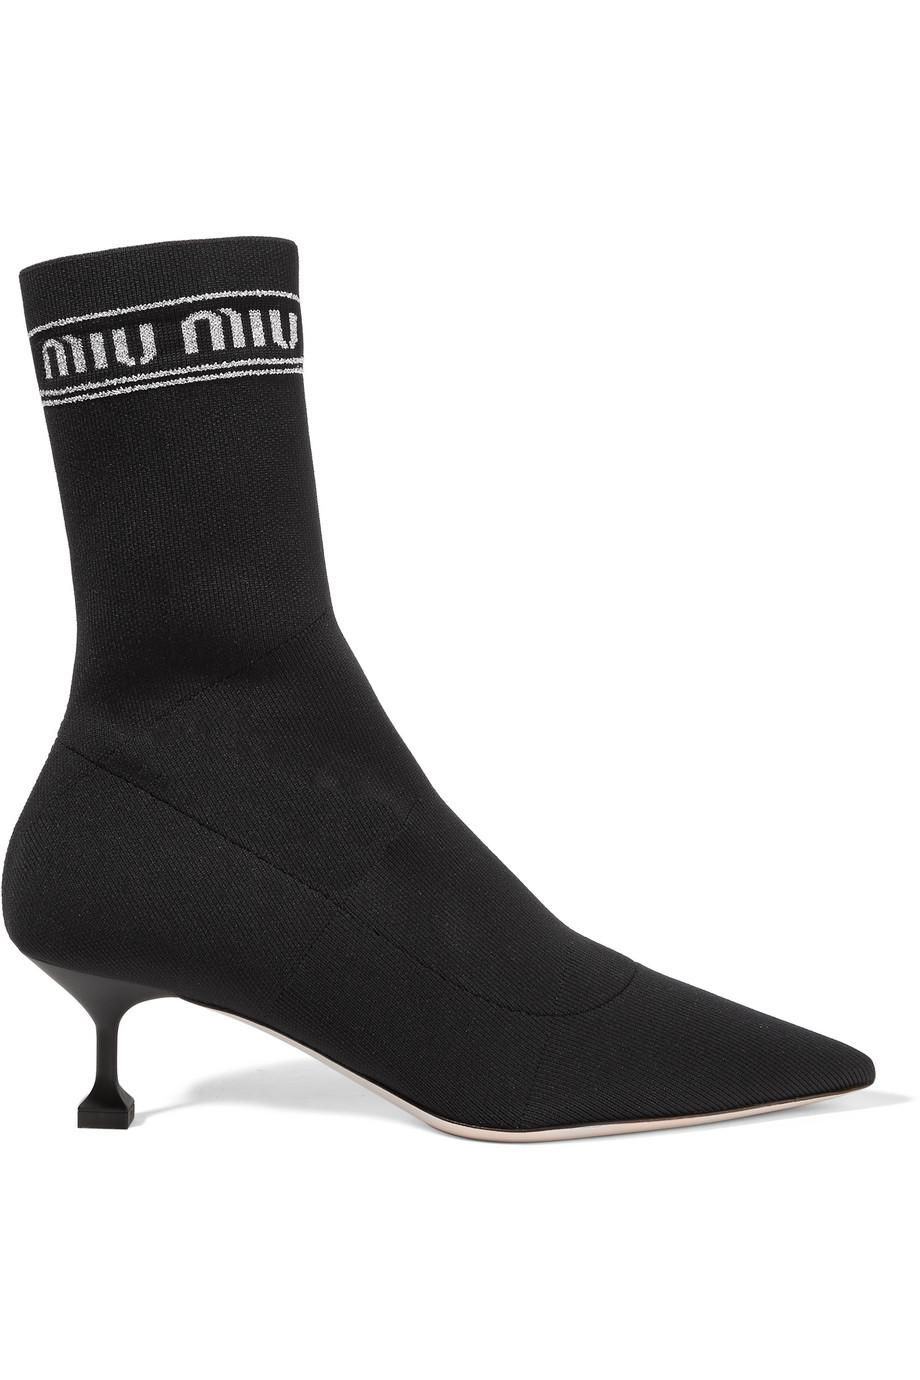 Miu Miu logo print boots 100% guaranteed cheap online outlet high quality browse cheap online oRsJW